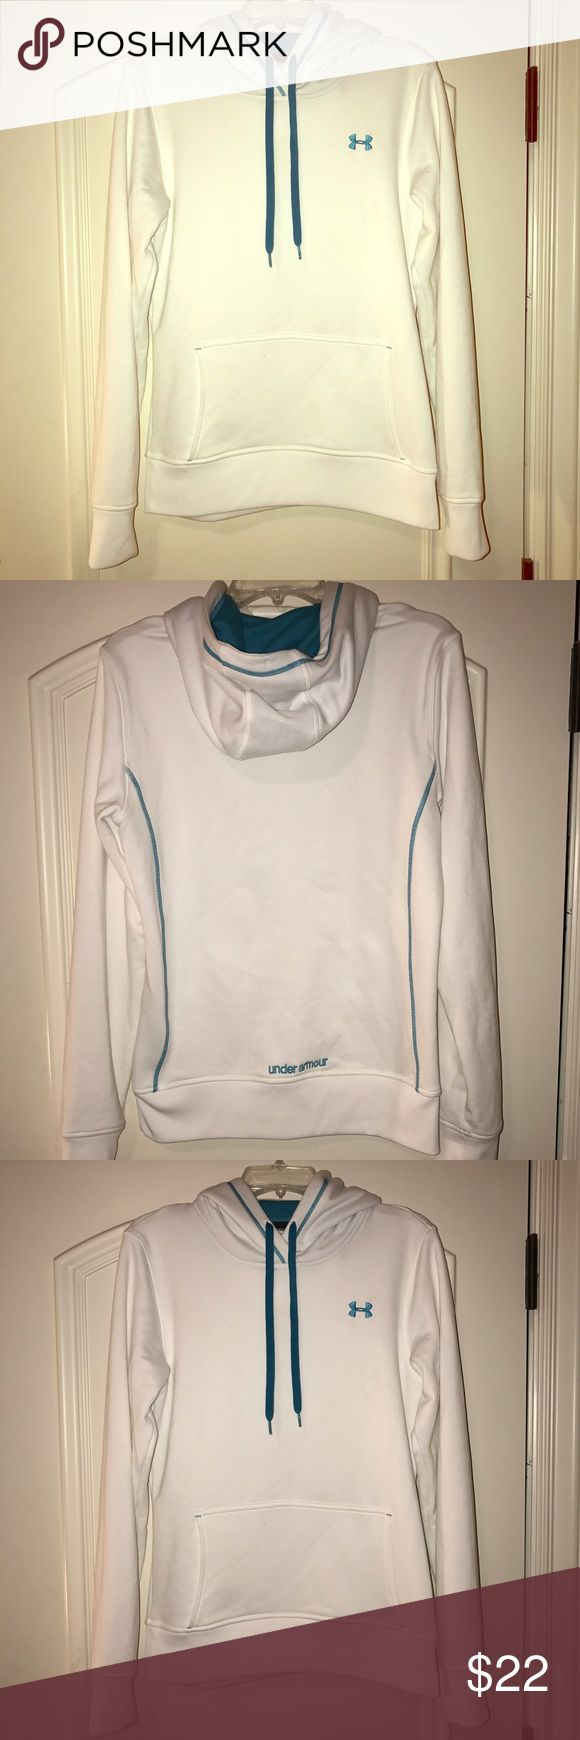 UNDER ARMOIR semi-fitted WOMENS HOODIE! Gently worn, very soft material, like dri-fit, size WOMENS MEDIUM. blue accents, so comfortable! I love this hoodie but I never wear it out! Under Armour Tops Sweatshirts & Hoodies